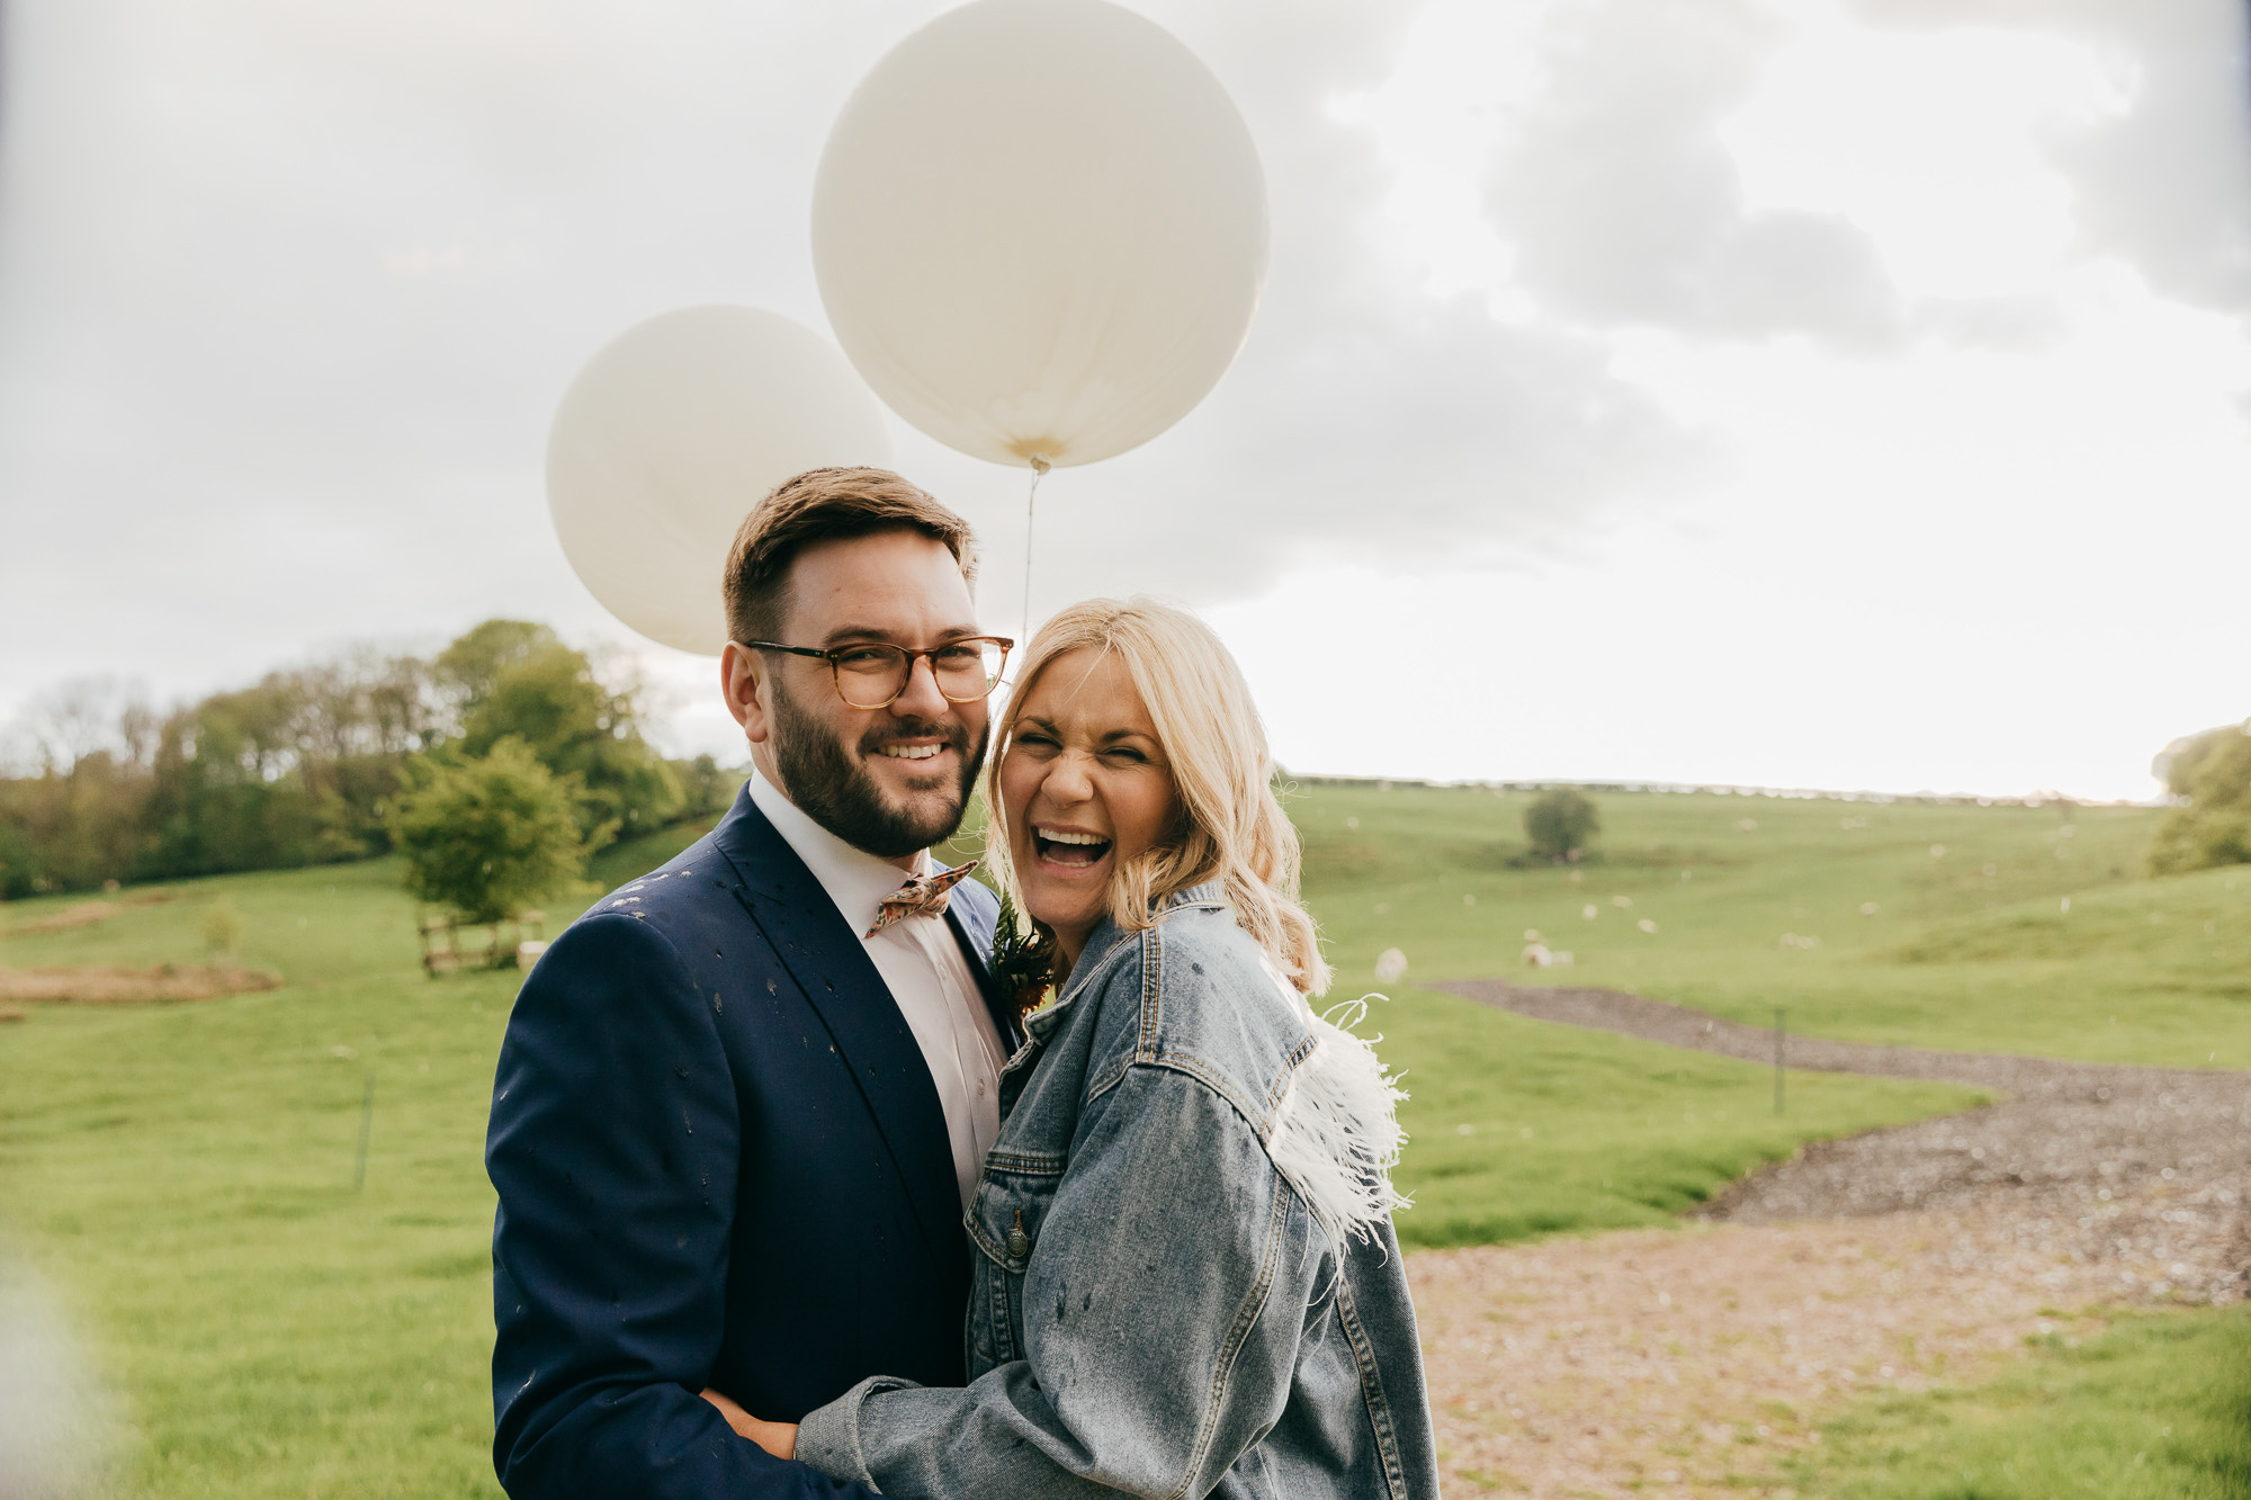 joyful portrait of bride and groom with balloons at kingscote barn in gloucestershire